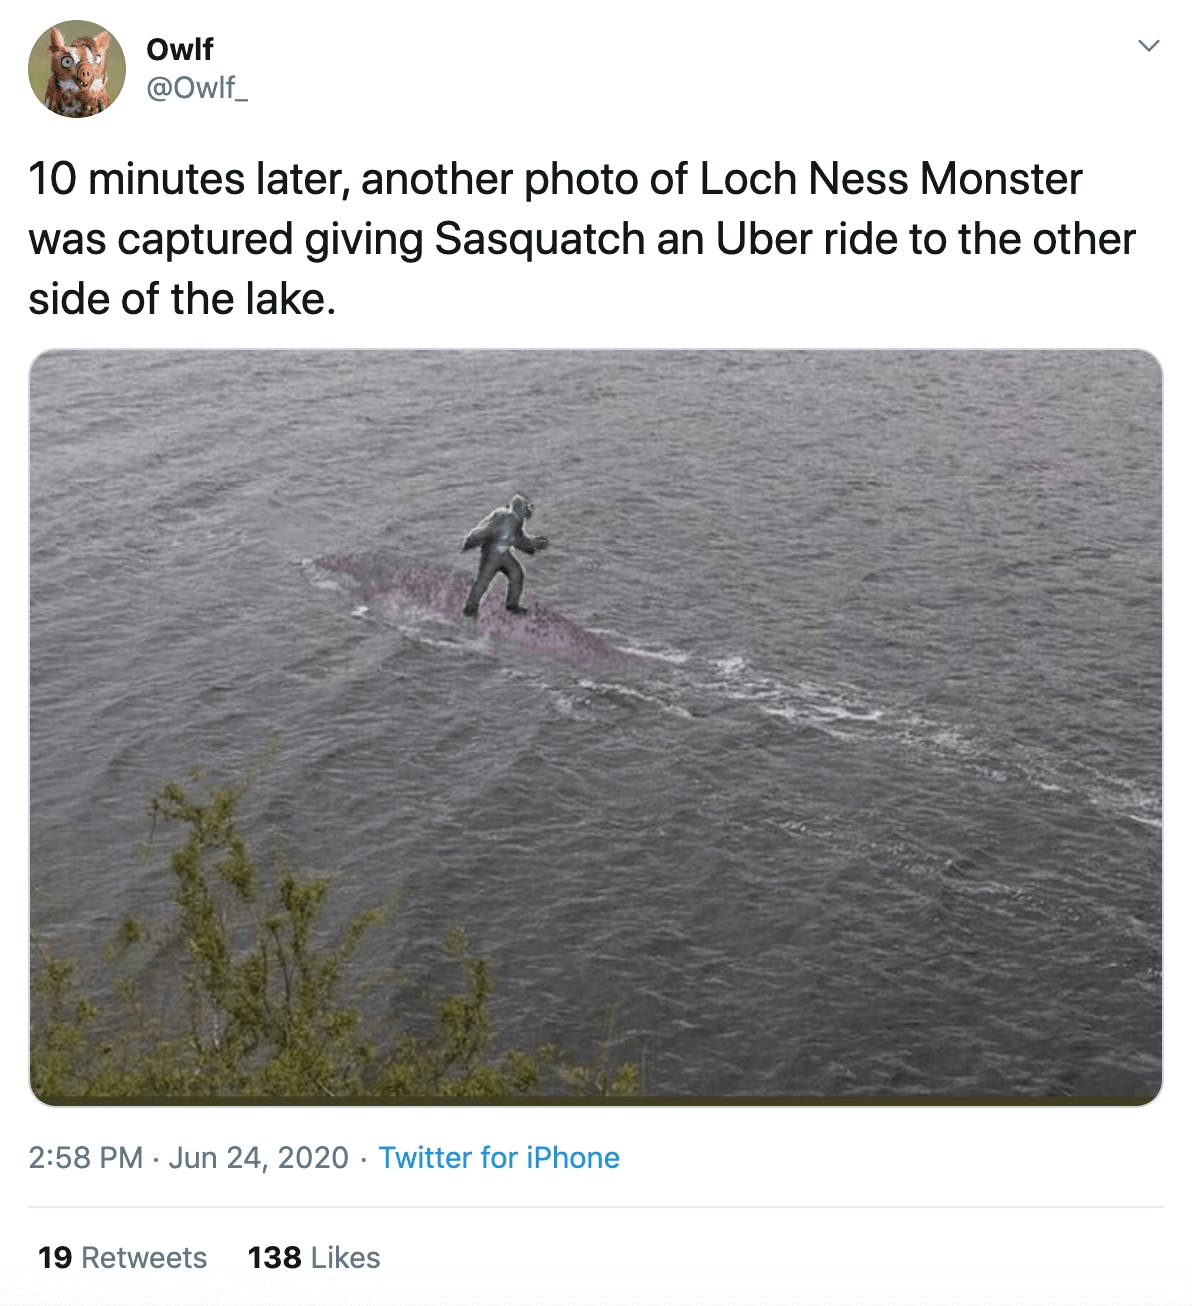 """""""10 minutes later, another photo of Loch Ness Monster was captured giving Sasquatch an Uber ride to the other side of the lake."""" picture of Sasquatch riding Nessie"""